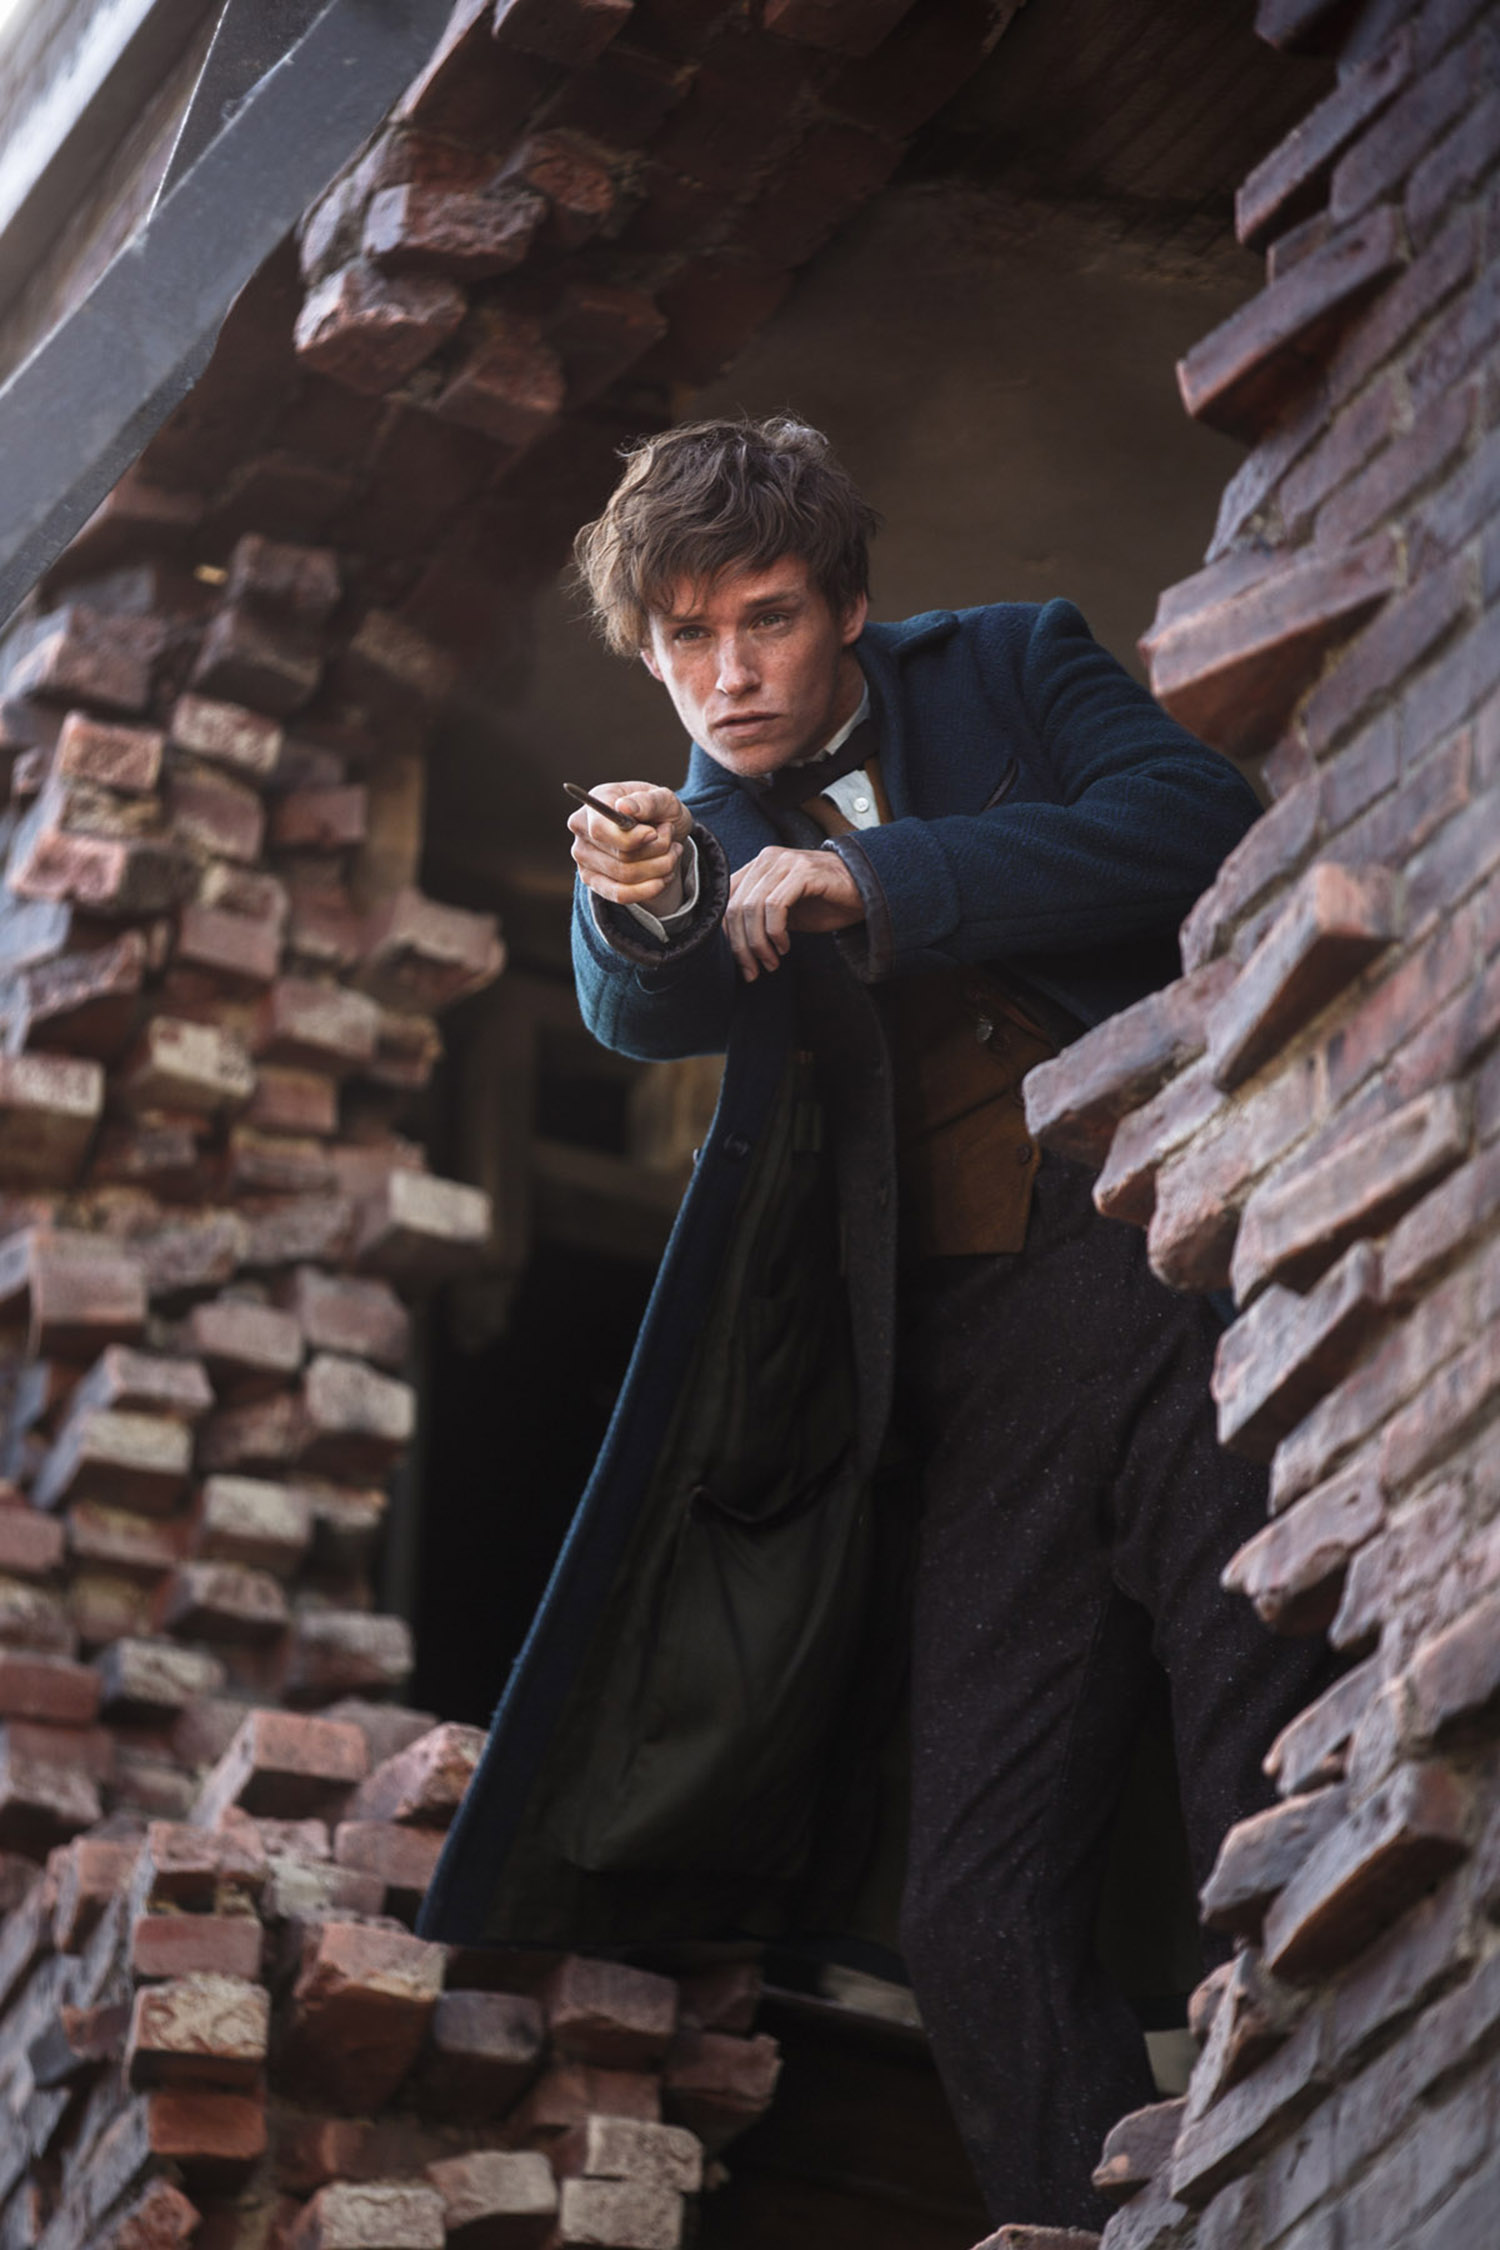 EDDIE REDMAYNE as Newt Scamander in Warner Bros. Pictures' fantasy adventure